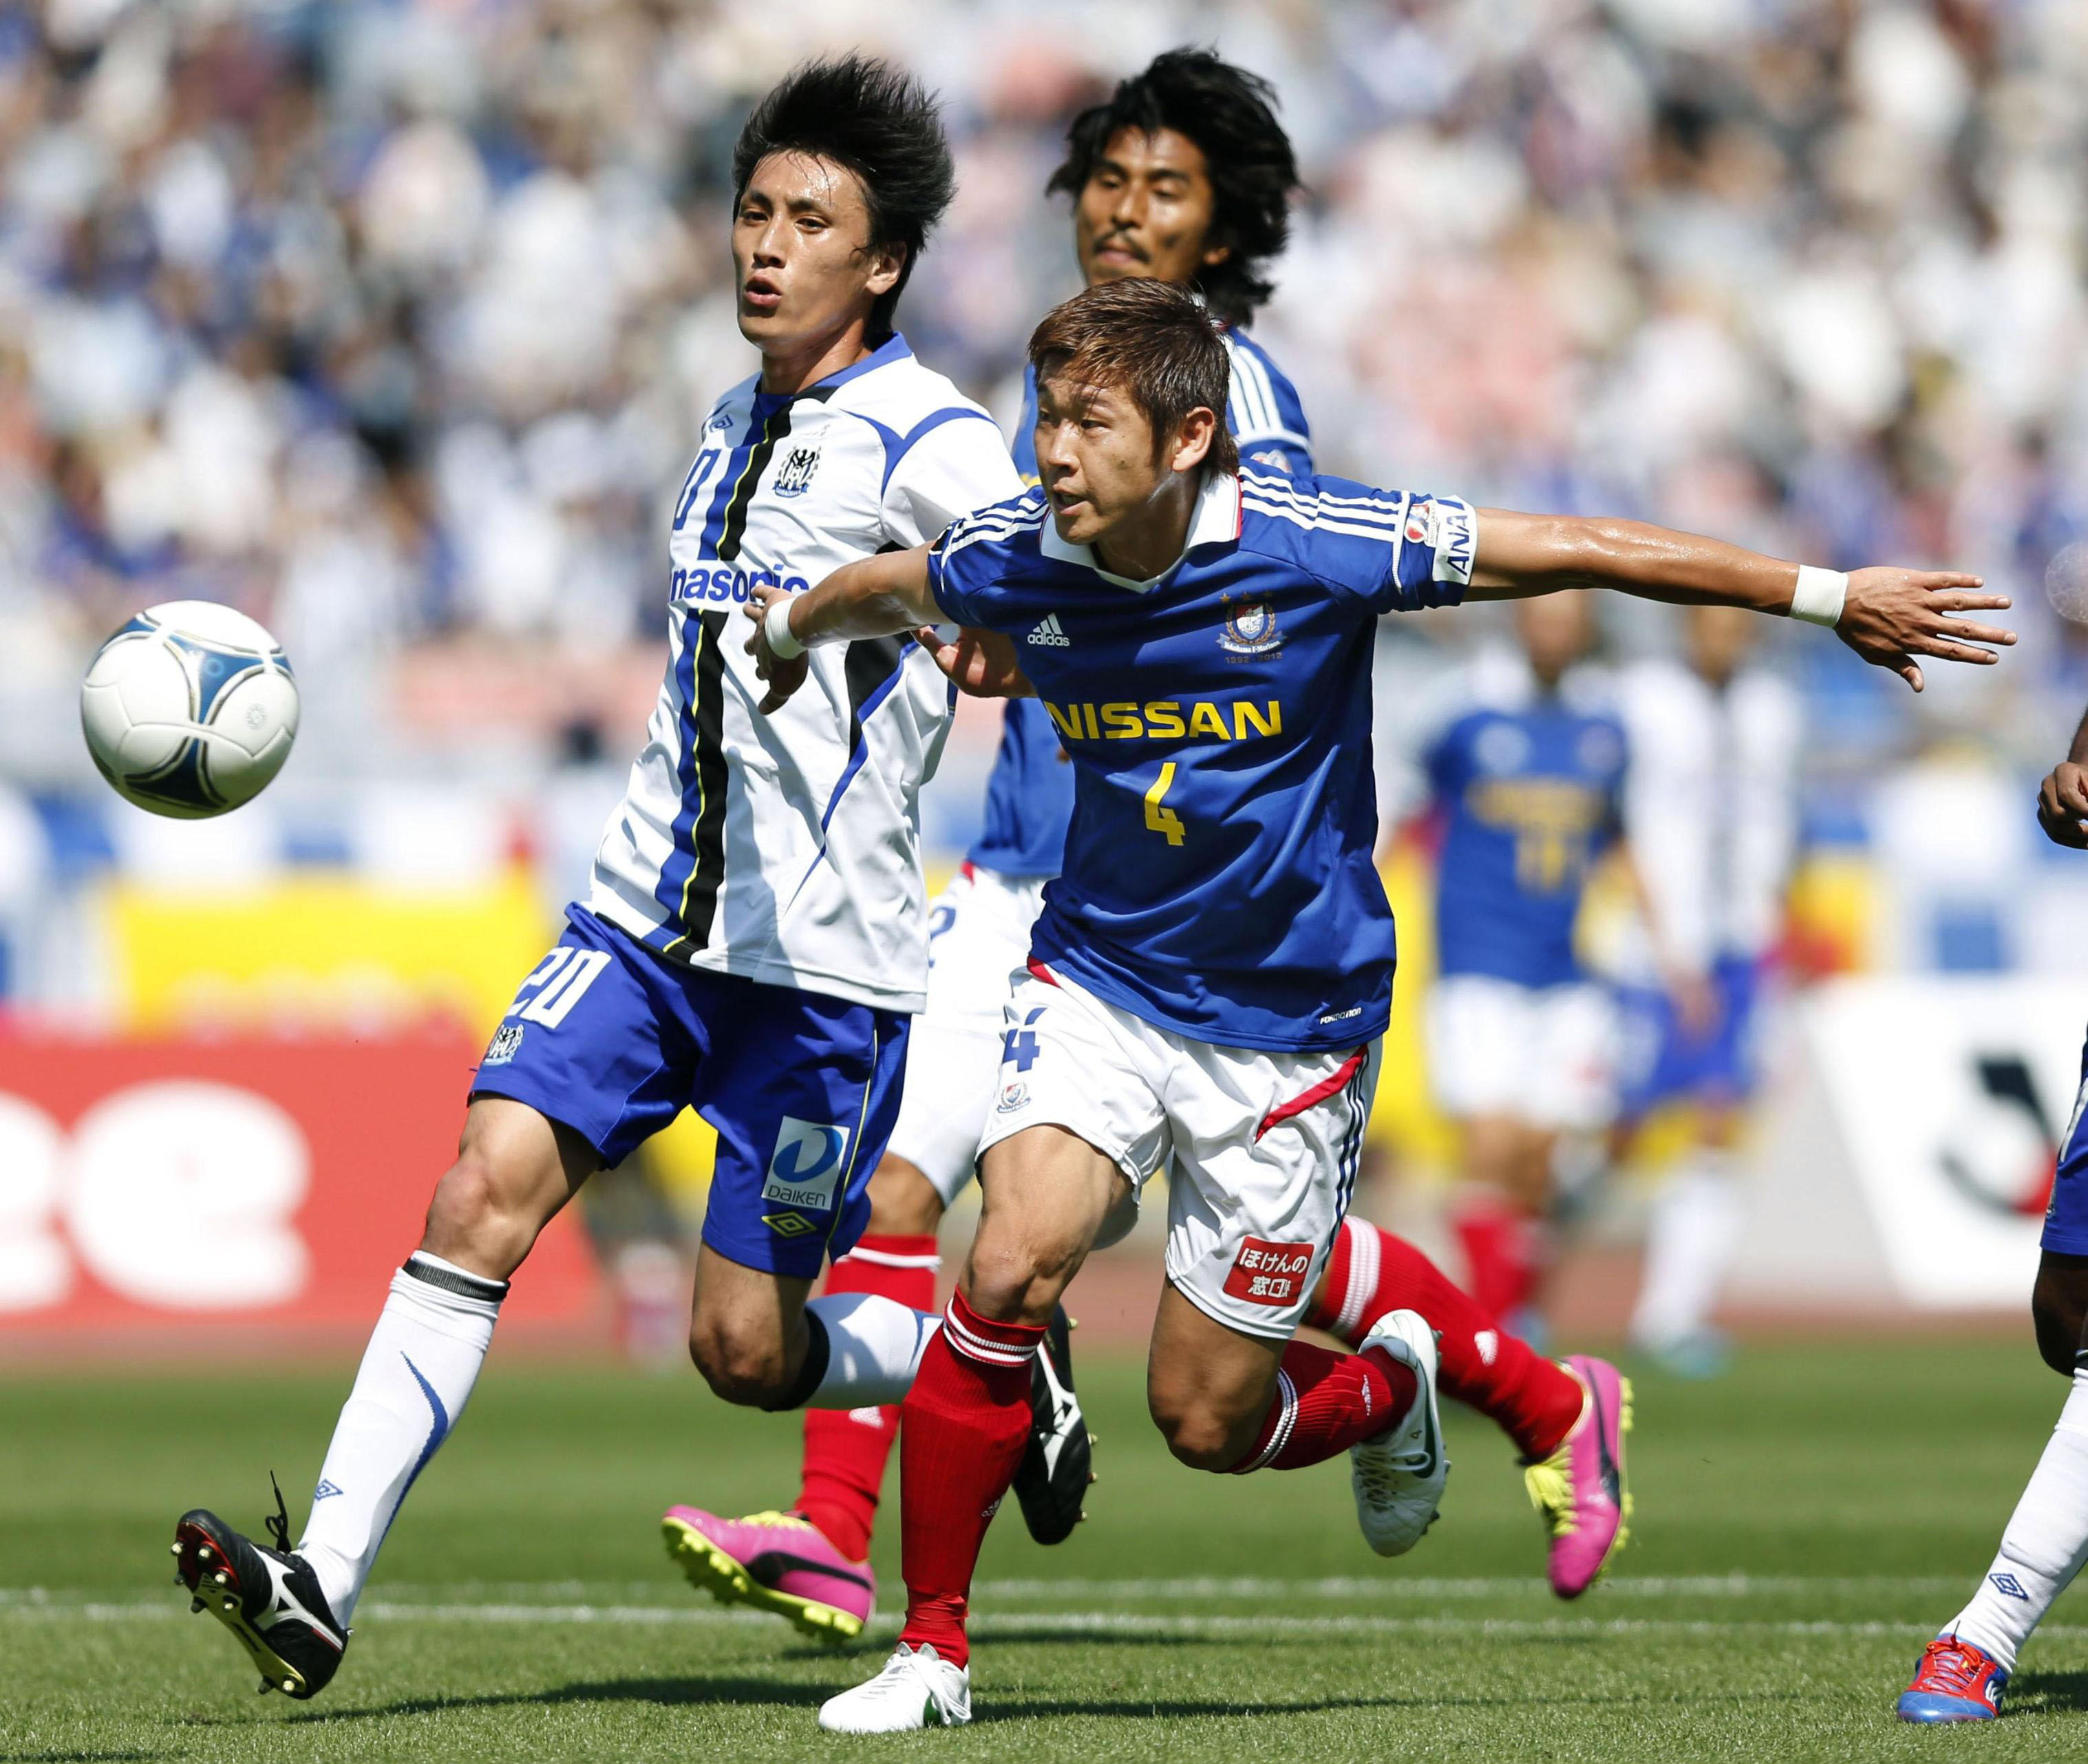 Yokohama defender Kurihara has big ambitions with club and country